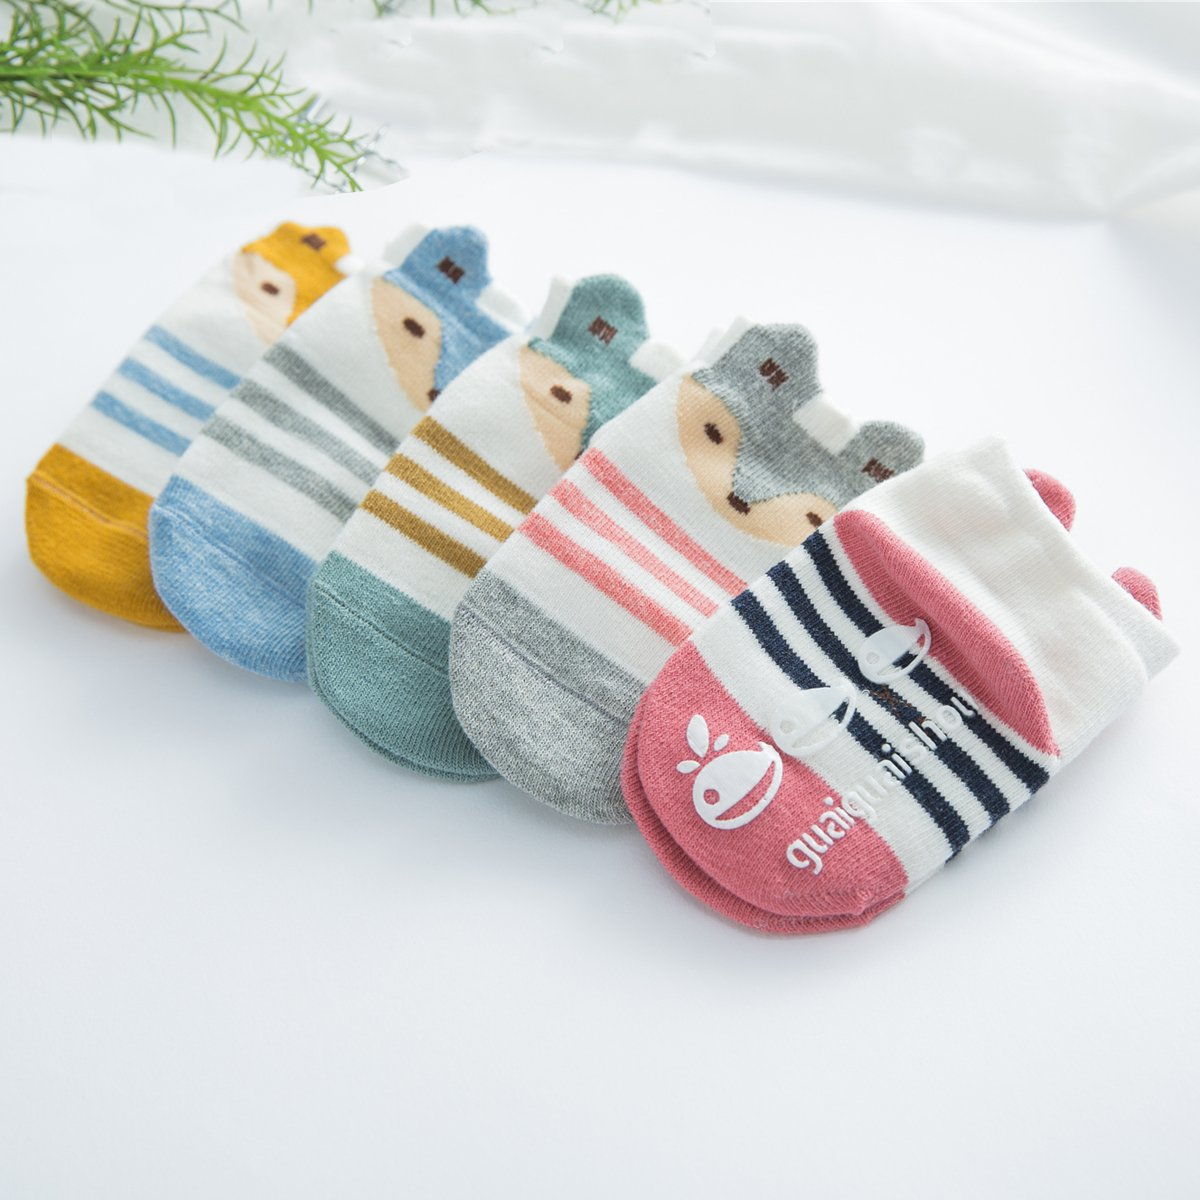 Fairy 5 Pairs Cartoon Cute Animals Fox Non Skid Cotton Baby Socks Stripes Socks (12 - 24 Months) by Fairy Socks (Image #4)